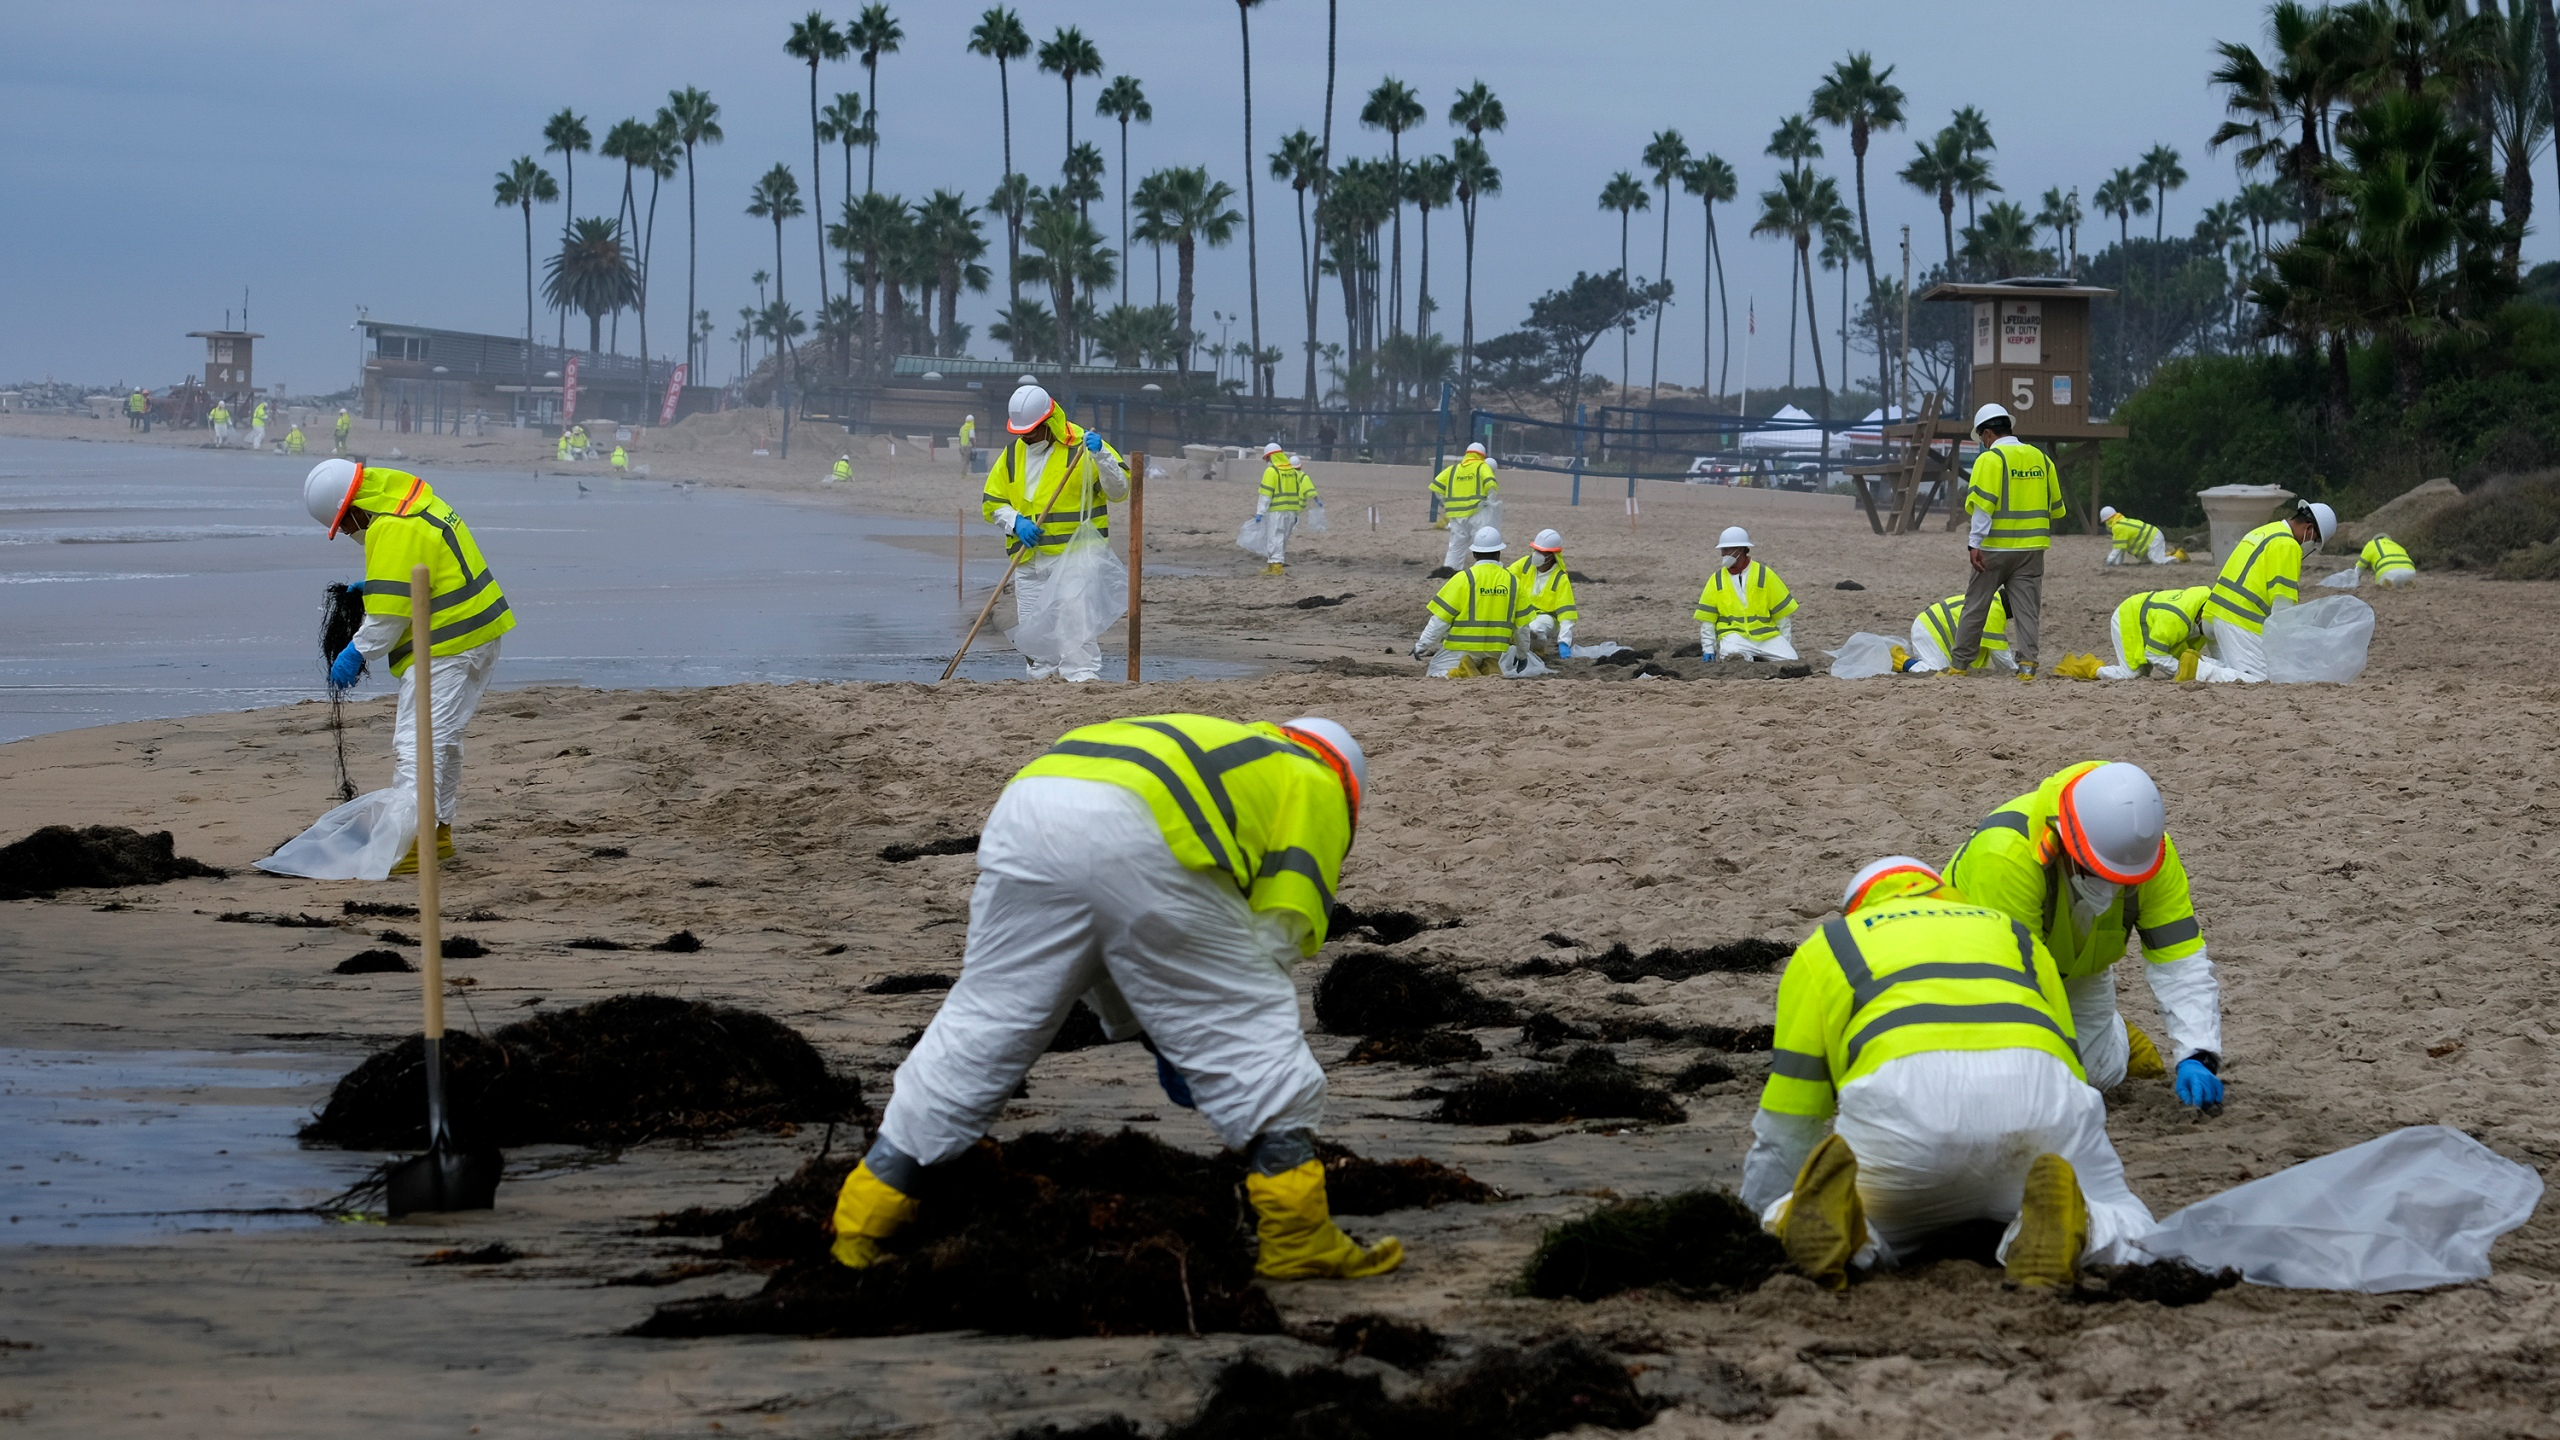 In this Oct. 7, 2021, file photo, workers in protective suits clean the contaminated beach in Corona Del Mar after an oil spill in Newport Beach, Calif. A group of environmental organizations is demanding the Biden administration suspend and cancel oil and gas leases in federal waters off the California coast after a recent crude oil spill. The Center for Biological Diversity and about three dozen organizations sent a petition Wednesday, Oct. 20, 2021, to the Department of the Interior, arguing it has the authority to end these leases. (AP Photo/Ringo H.W. Chiu)